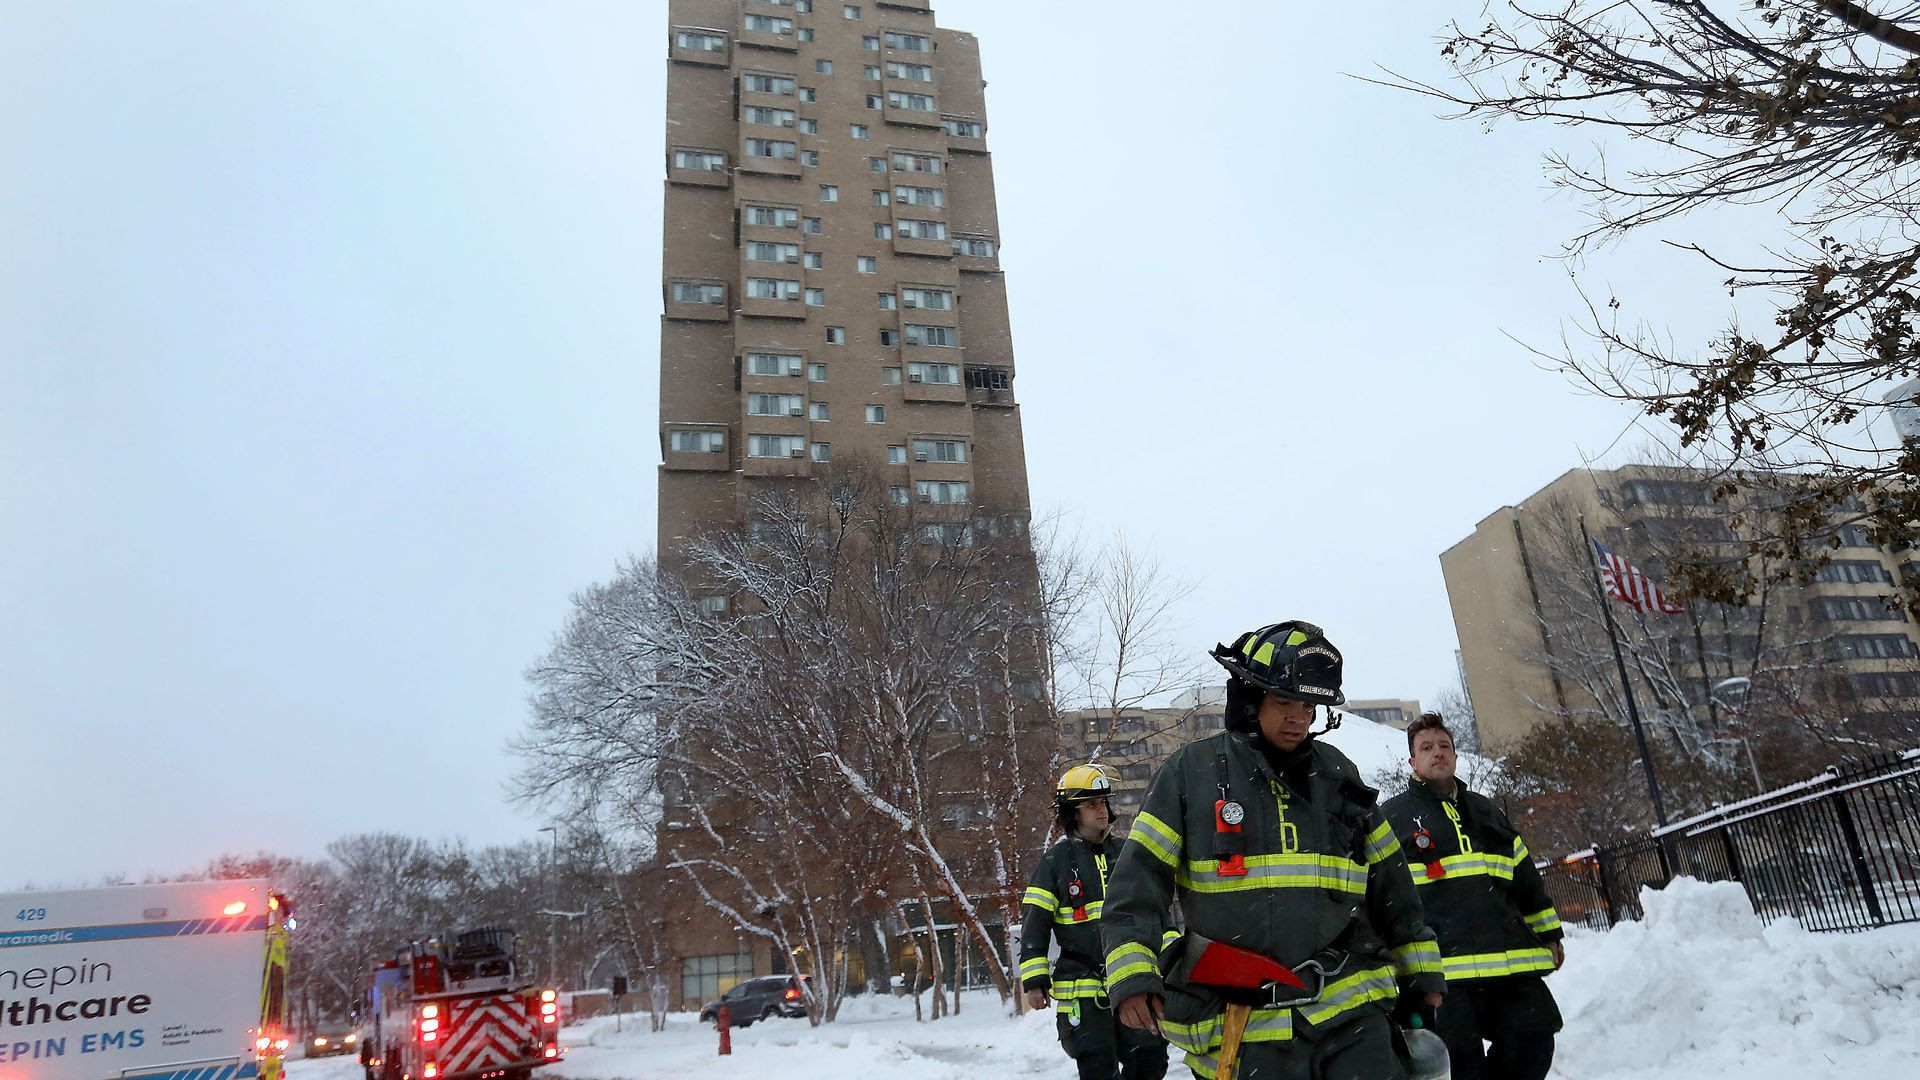 Three Minneapolis firefighters leave a high-rise building fire with their heads down on a snowy winter day.